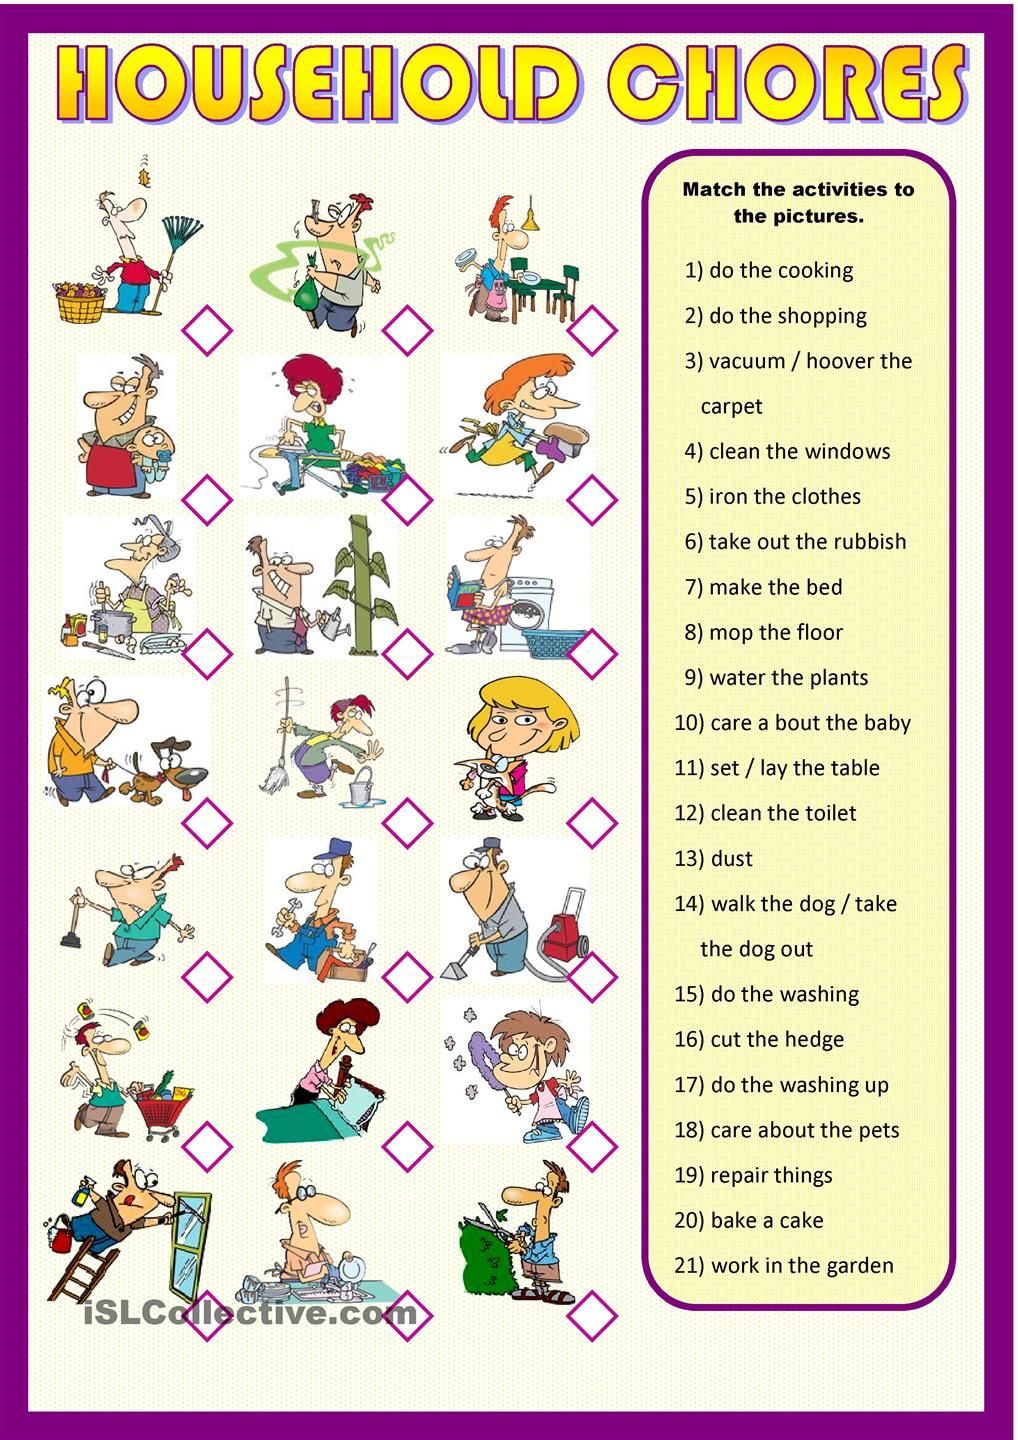 Household Chores English Activities For Kids Learning English For Kids Everyday Activities